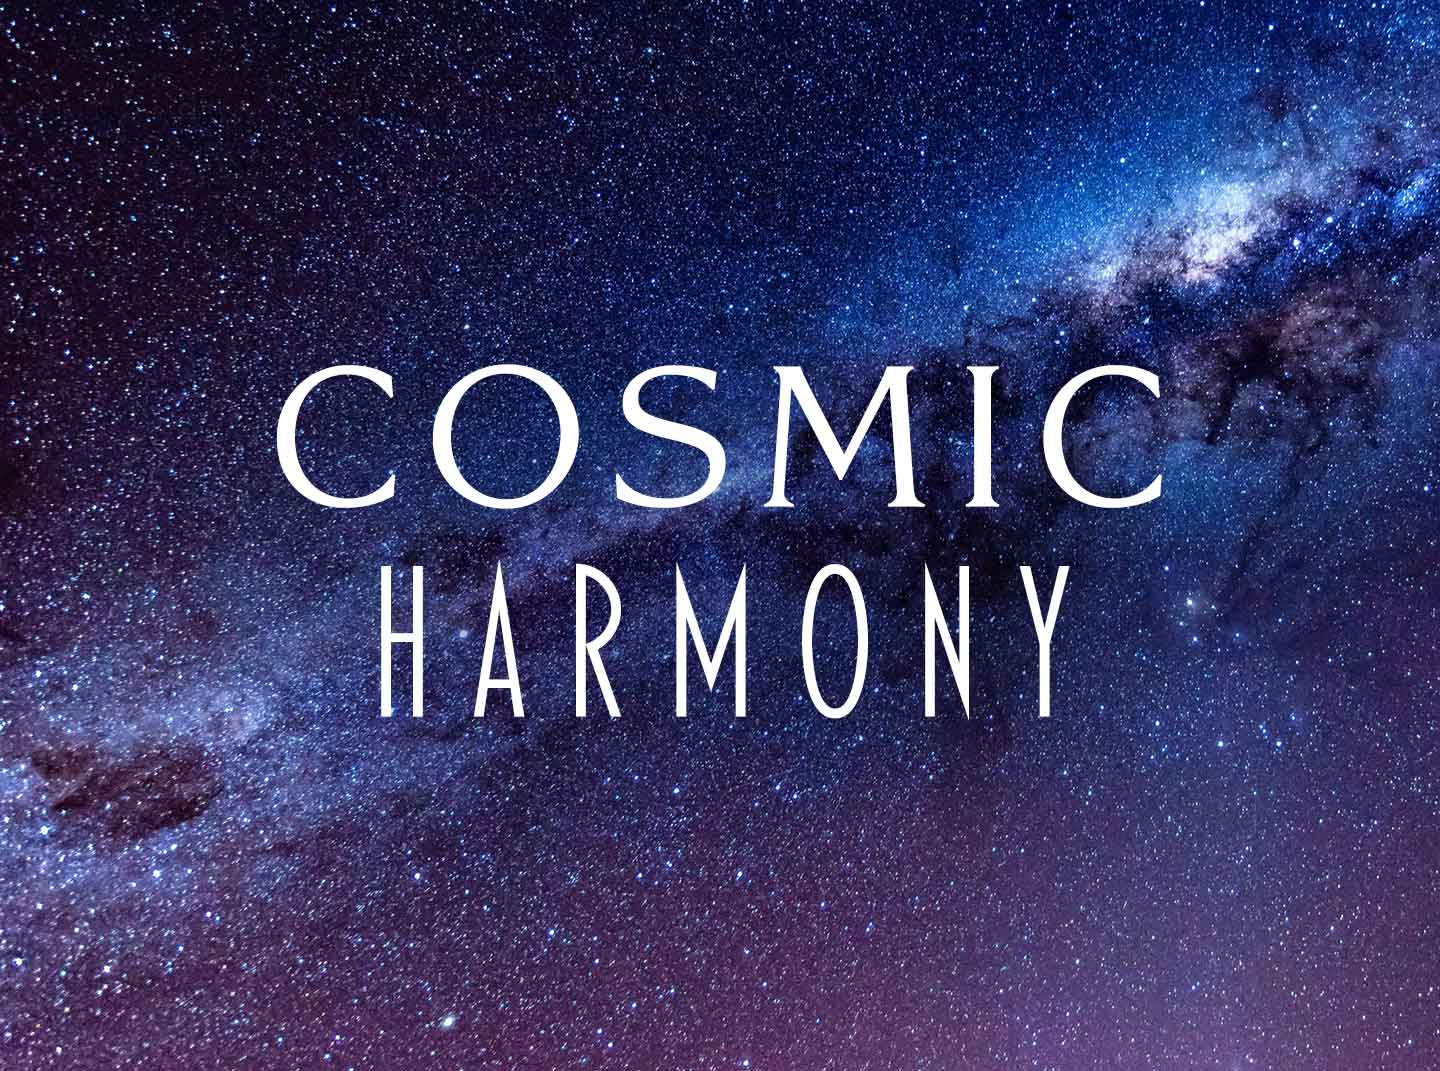 Cosmic Harmony — Ambient Space Music for Relaxation, Meditation, and Sleep